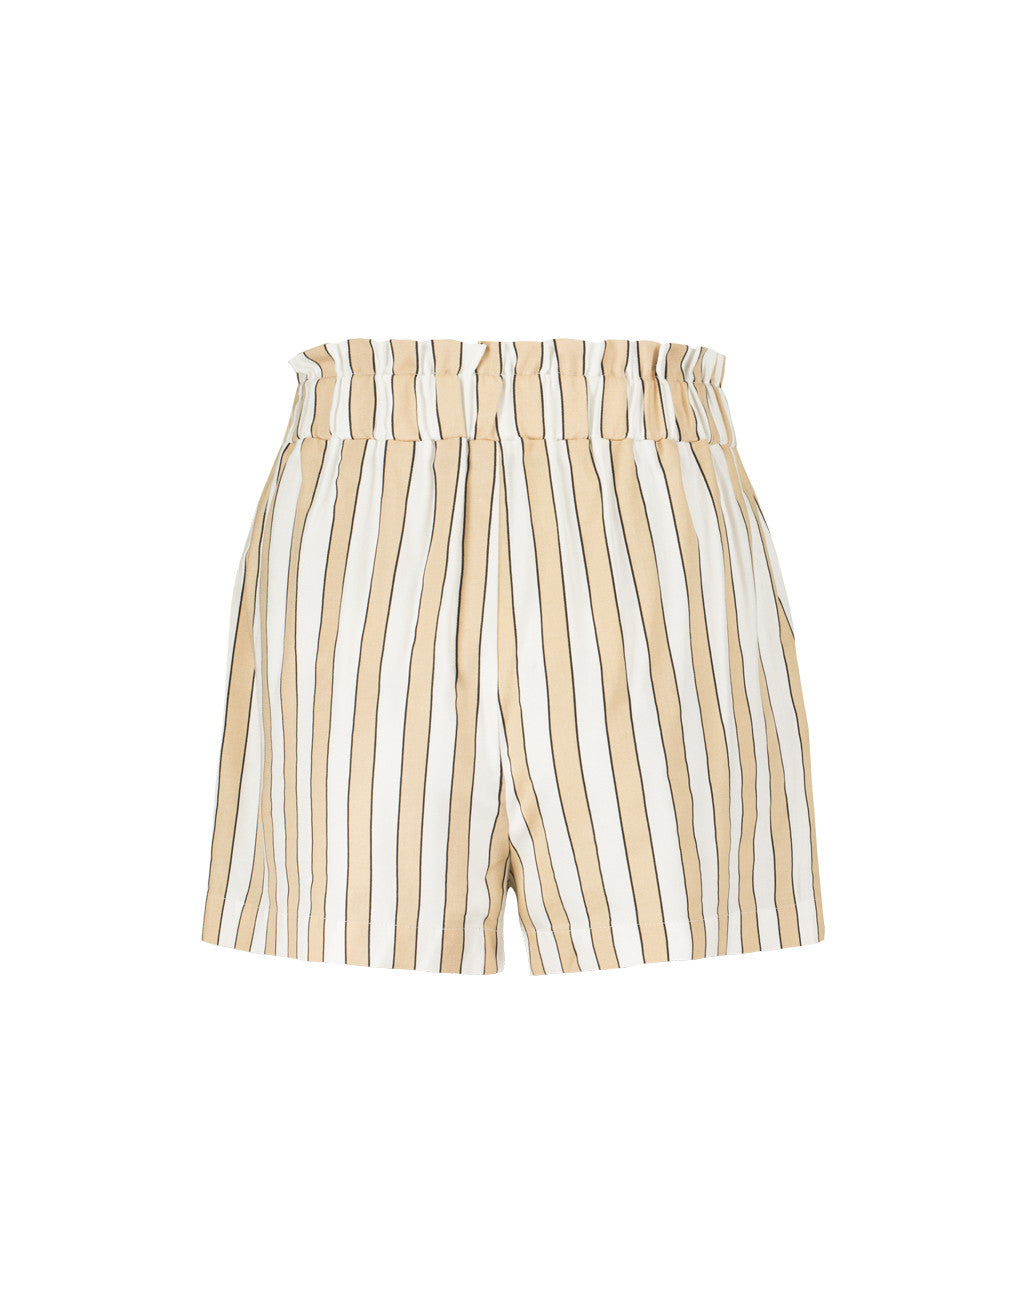 Shorts | Indian Tan2-White